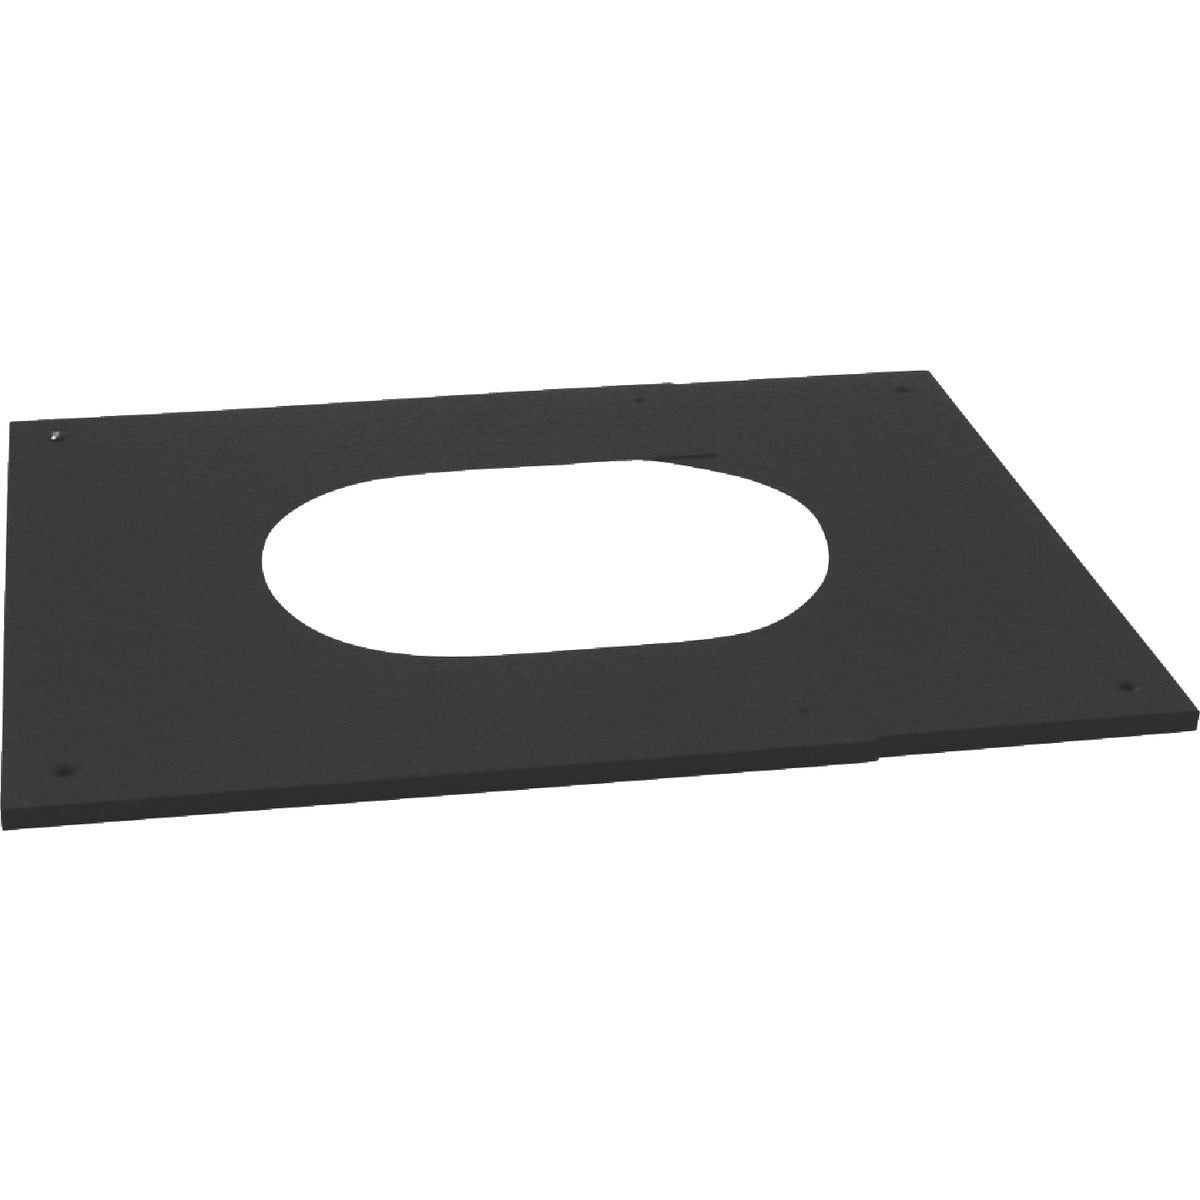 "6"" ADJUST CEILING PLATE - 206512 by Selkirk Corporation"